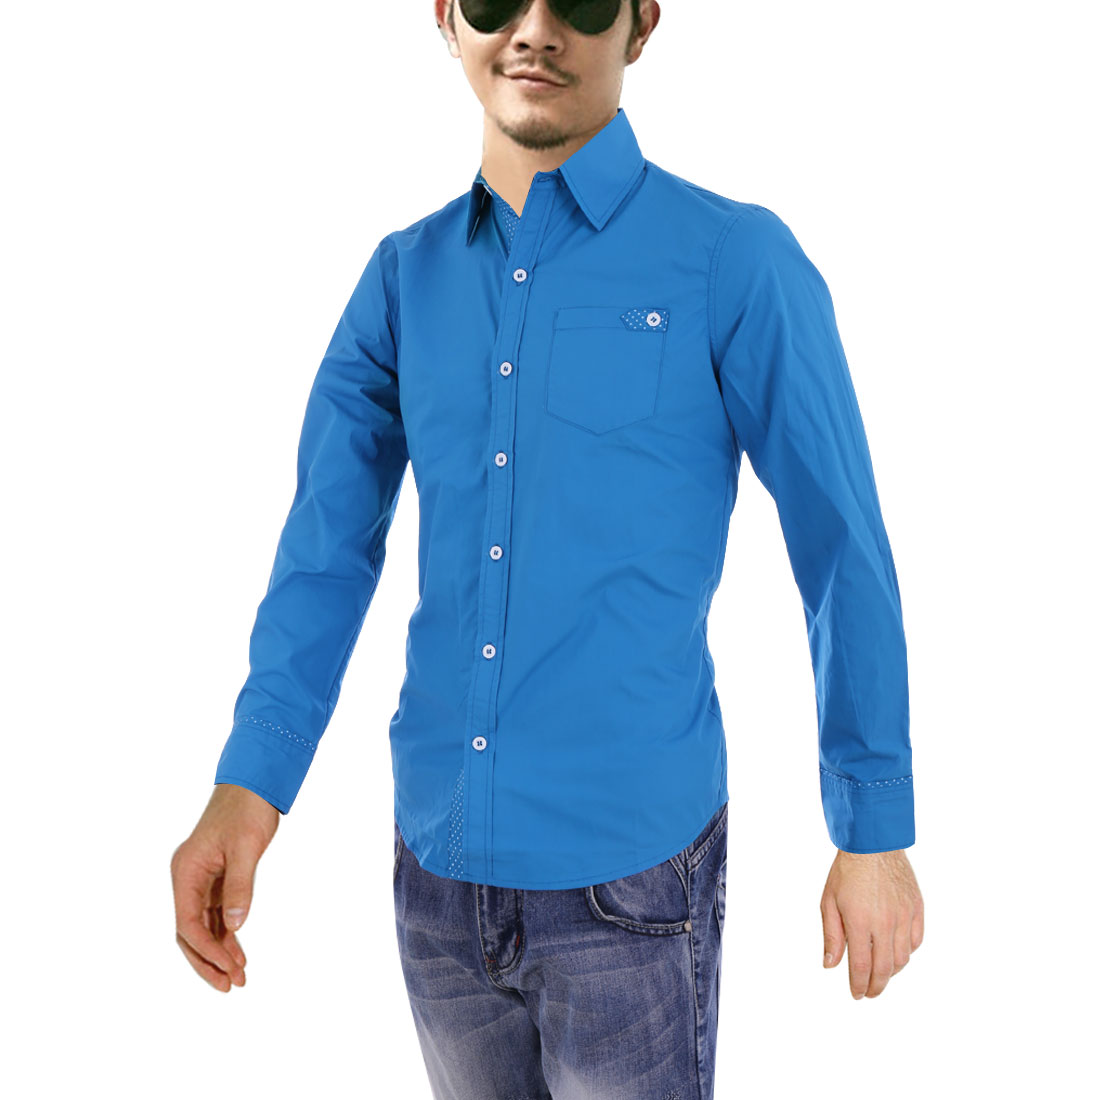 Men M Blue Long Sleeve Point Collar Button Closure Slim Fit Top Shirt